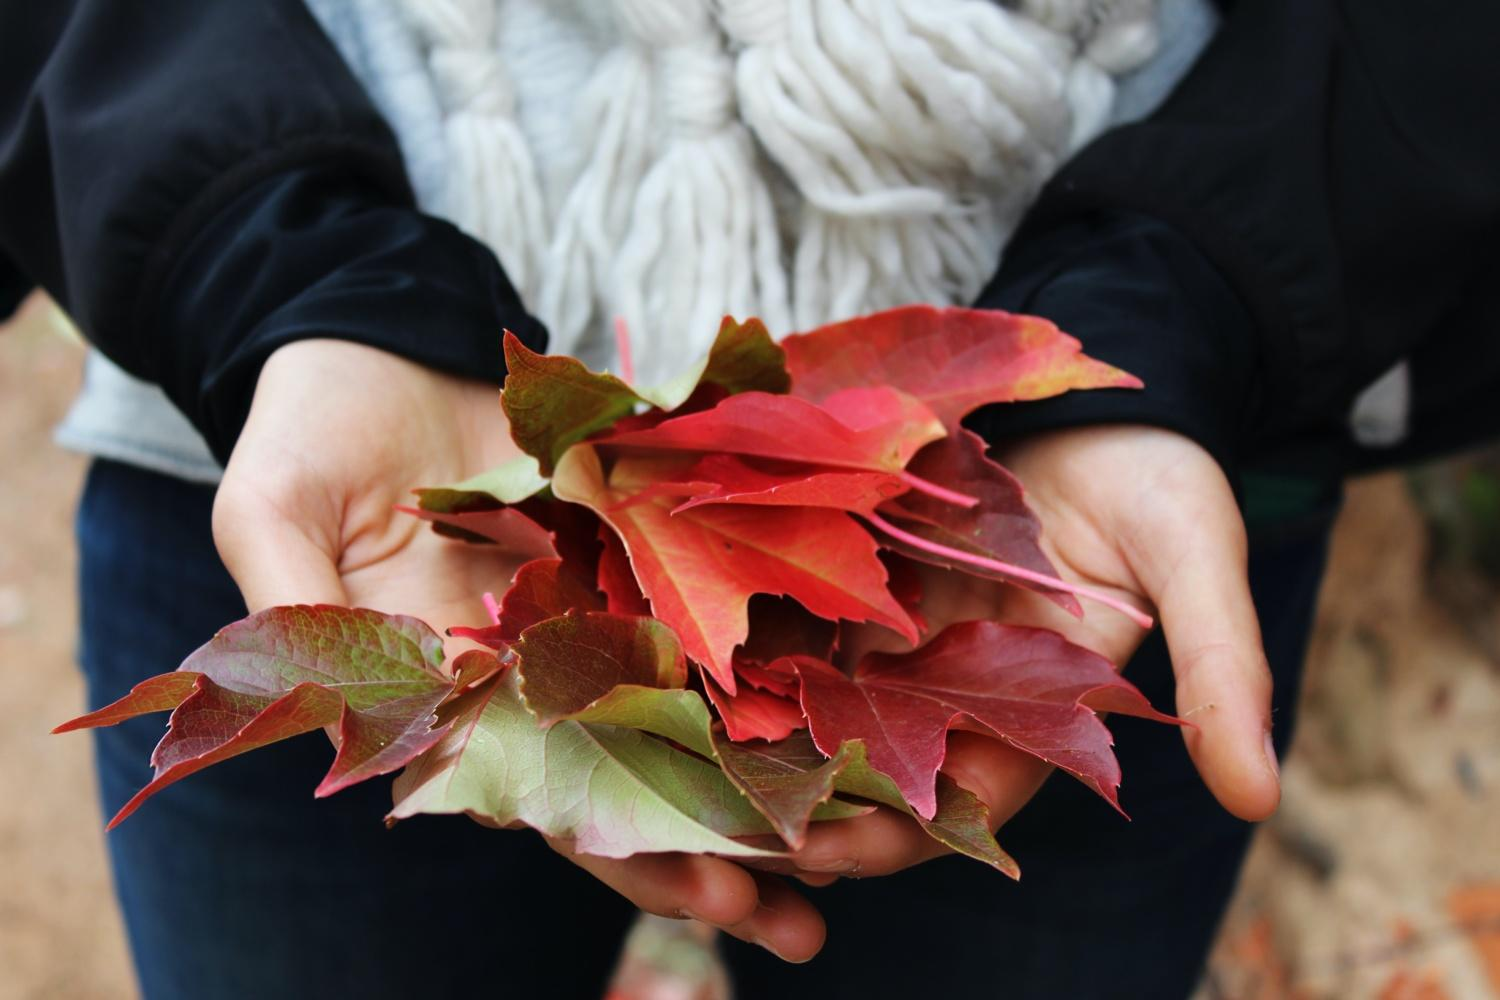 Close up on hands holding different coloured autumn leaves